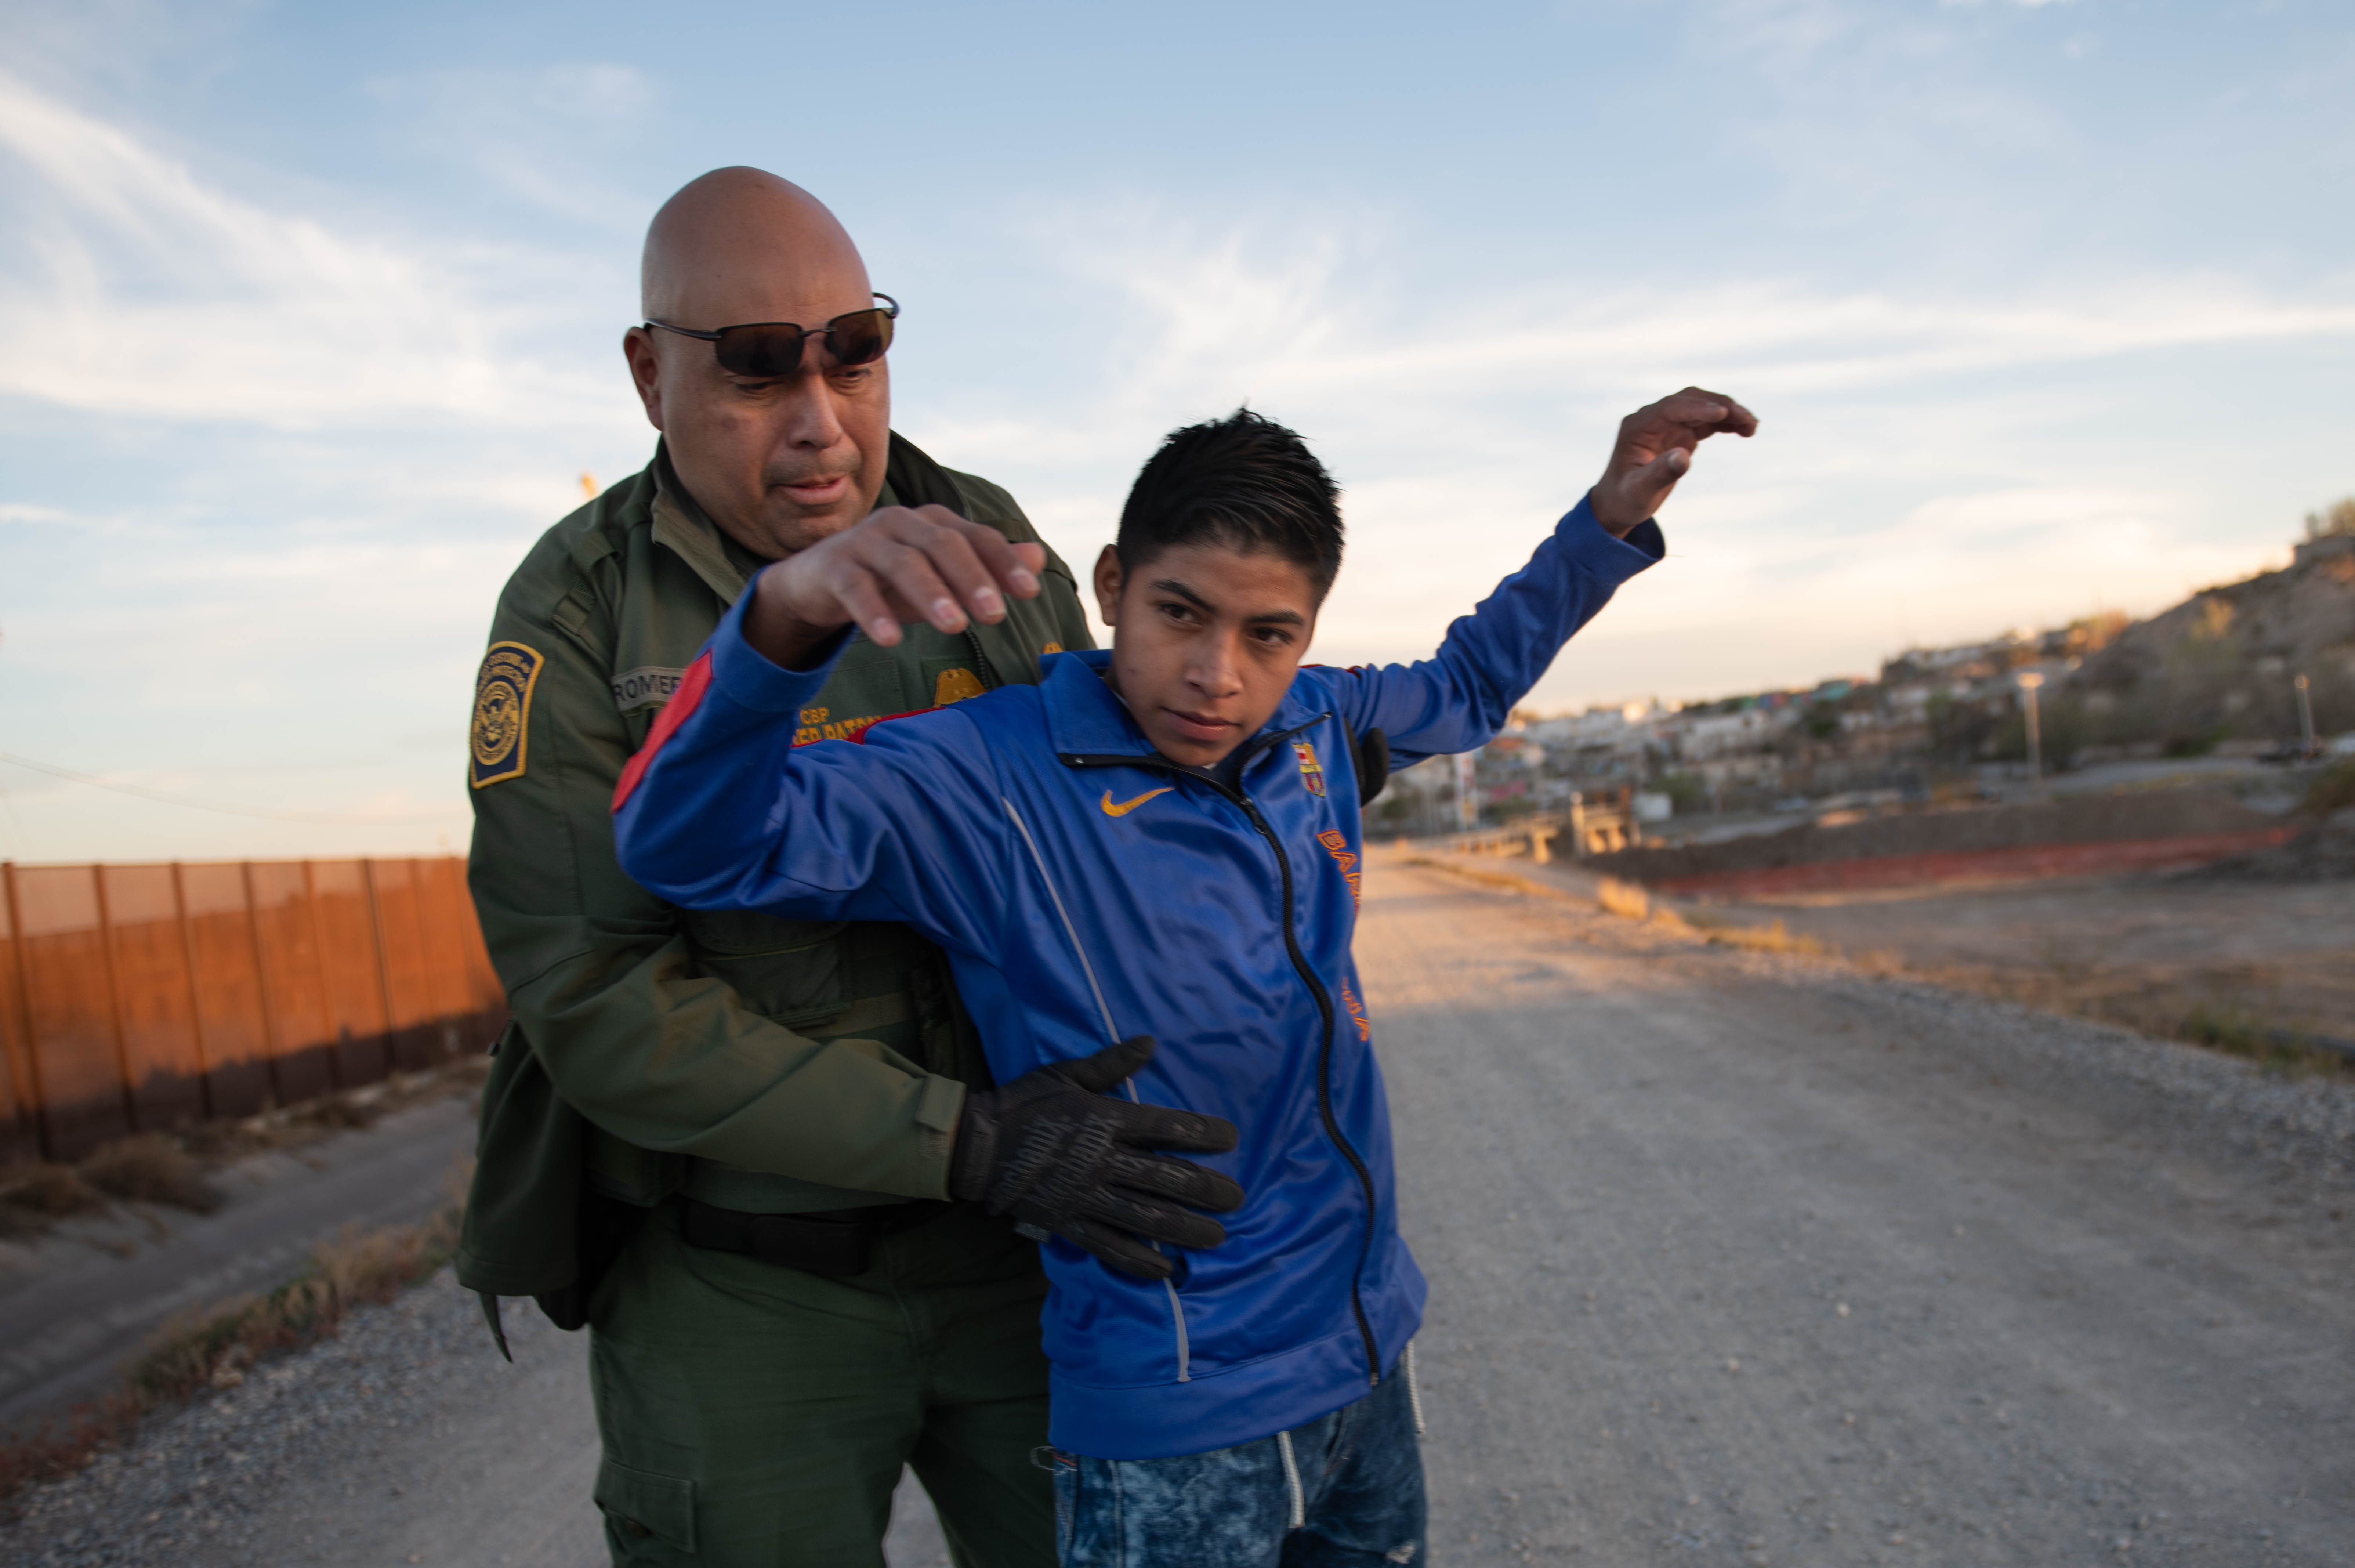 Crossing U S  border first step in complex asylum process